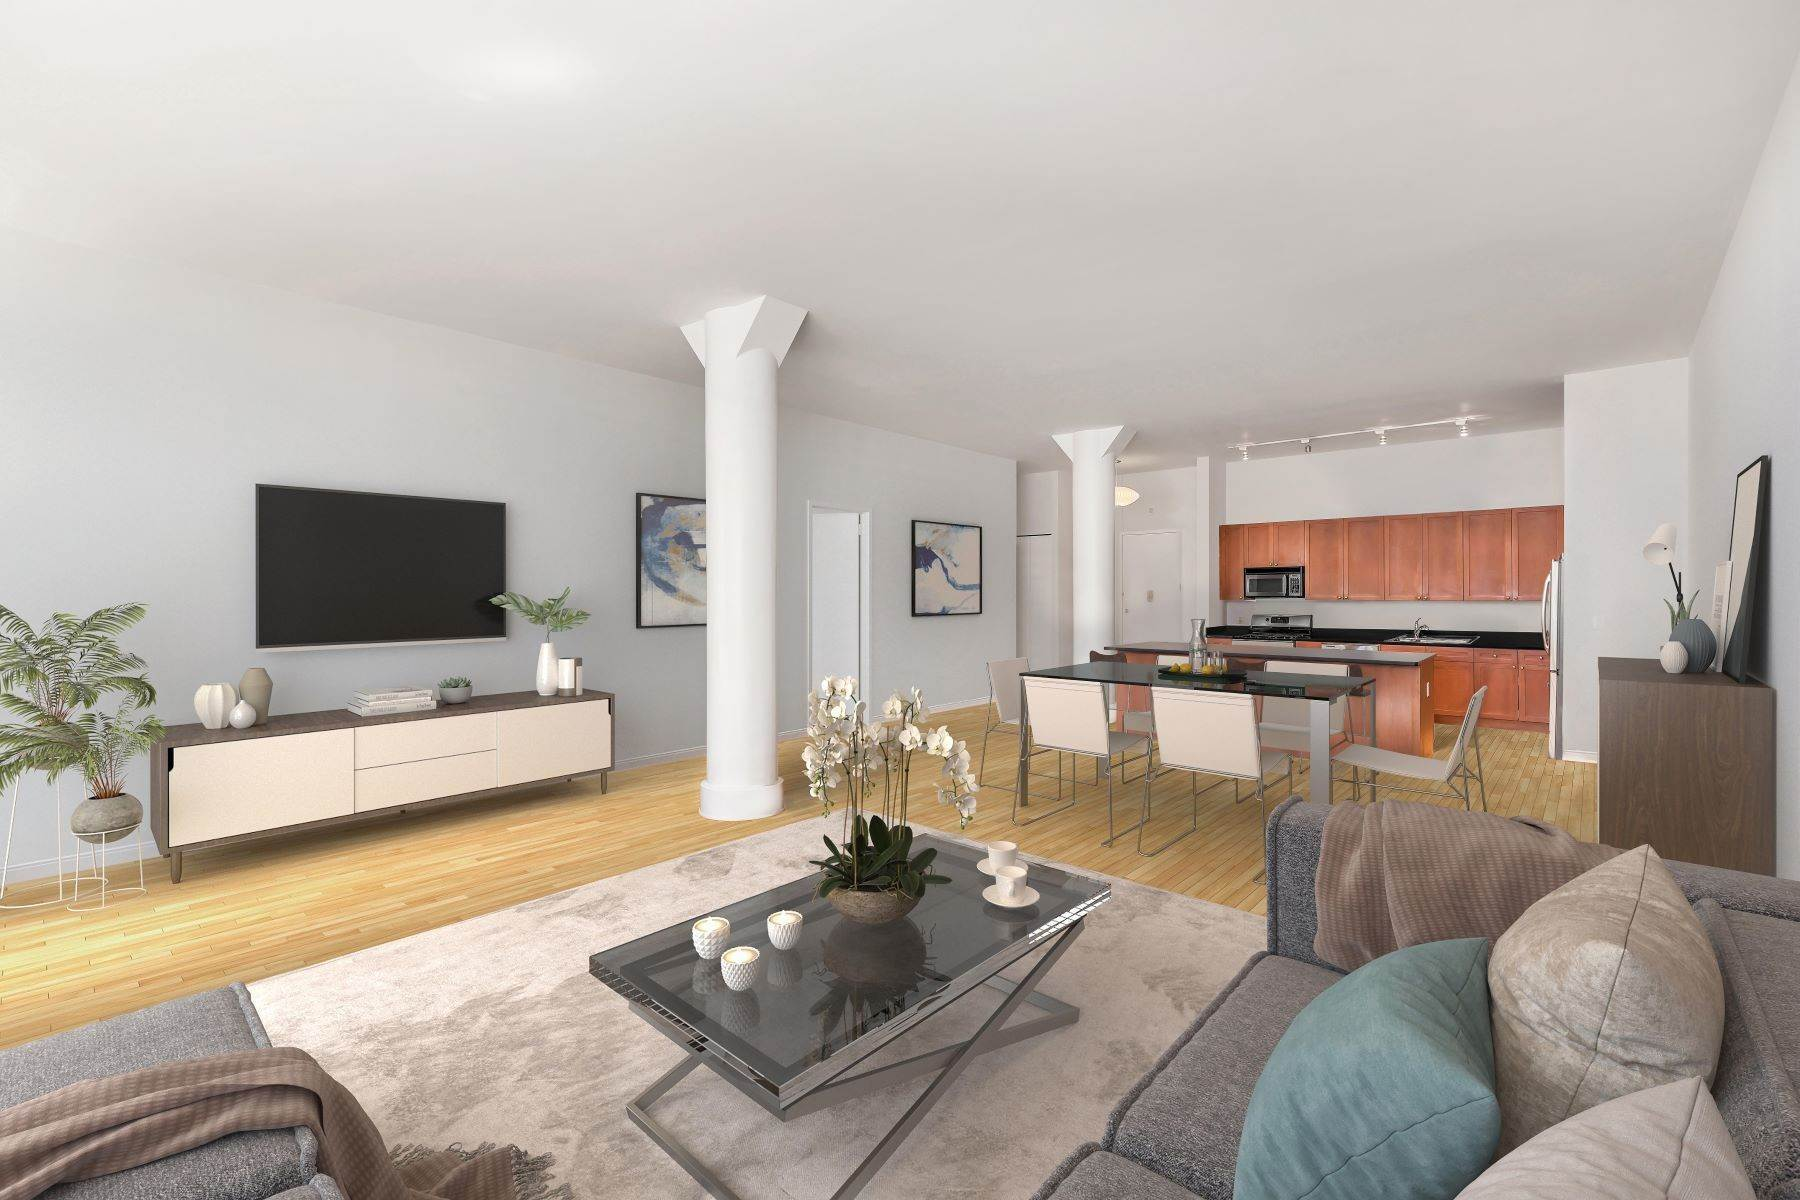 Condominiums for Active at 252 Seventh Avenue, Apt. 5V 252 Seventh Avenue, Apt 5V New York, New York 10001 United States